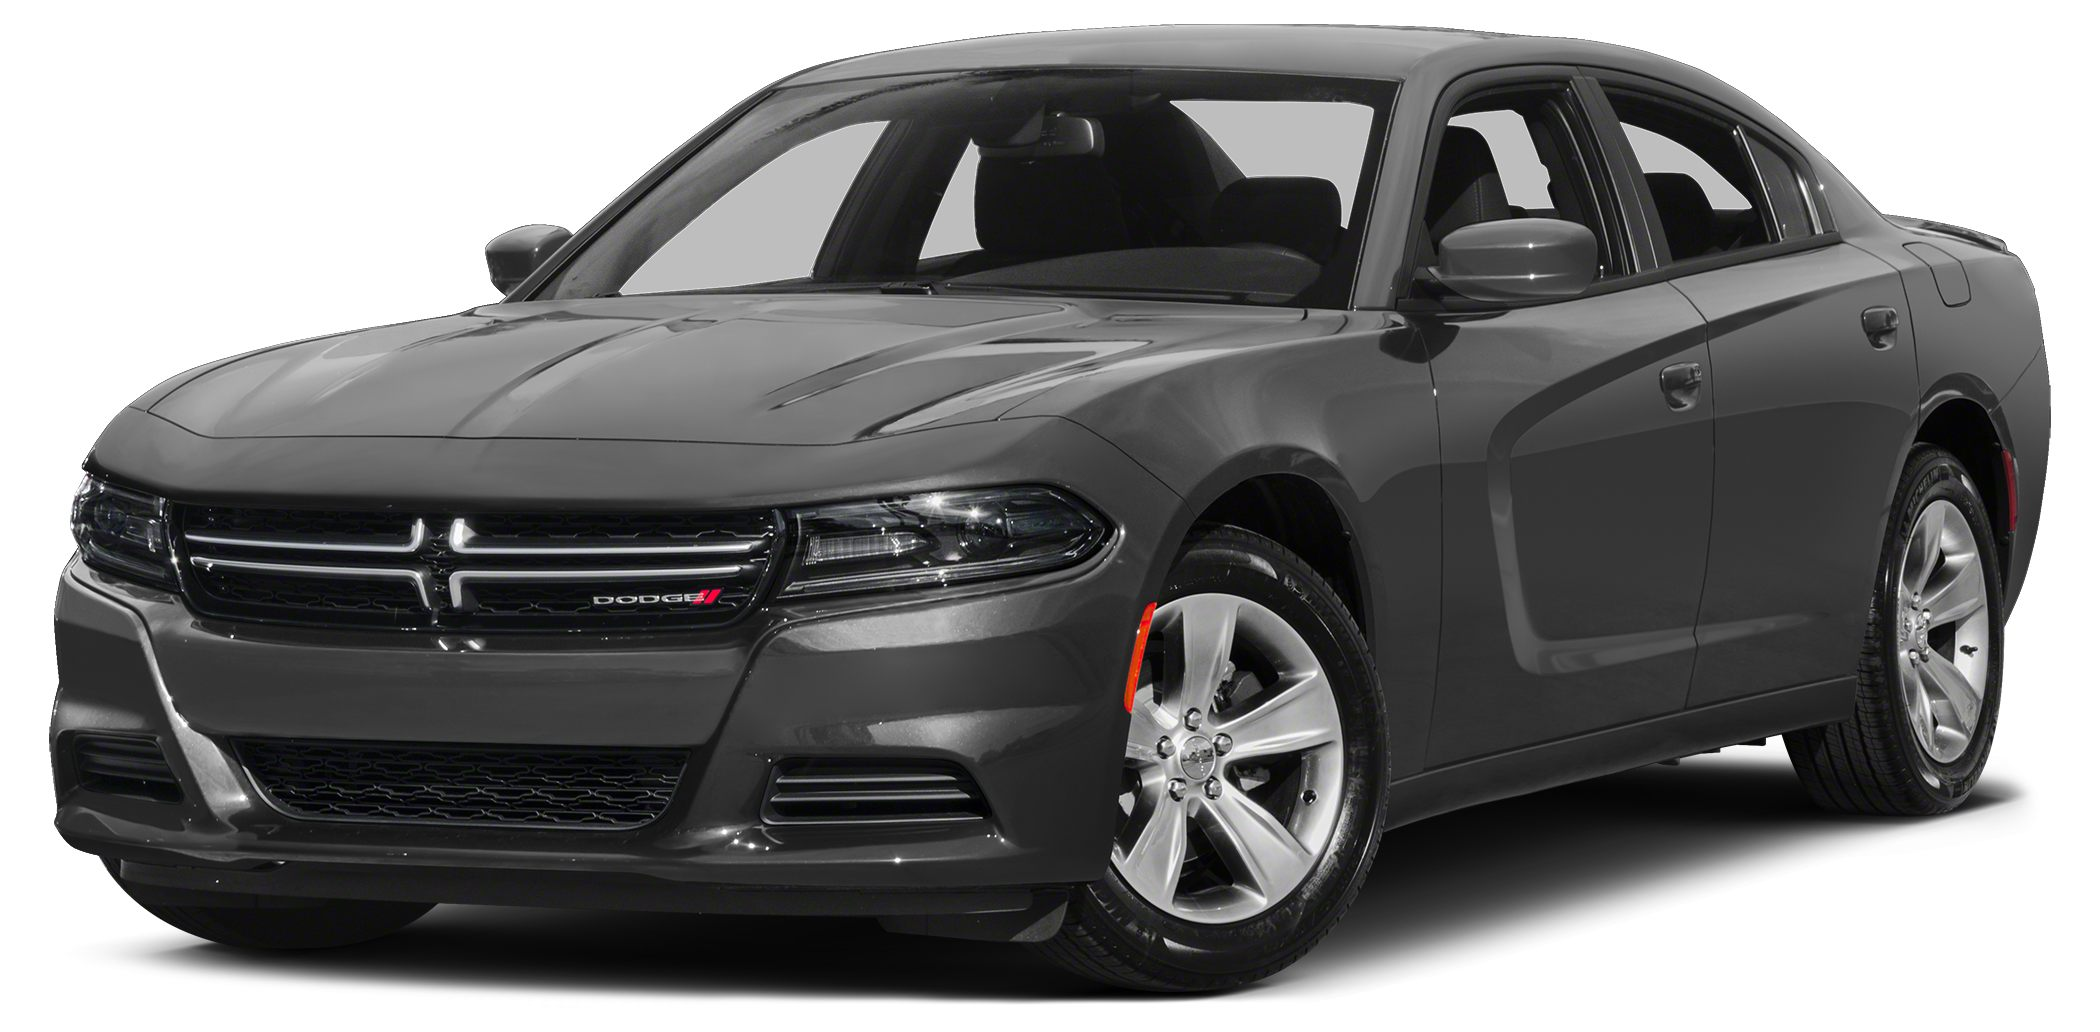 2017 Dodge Charger SE SPECIAL ONLINE PRICE INCLUDES 4000 IN FINAL PAY FACTORY CASH REBATES THAT